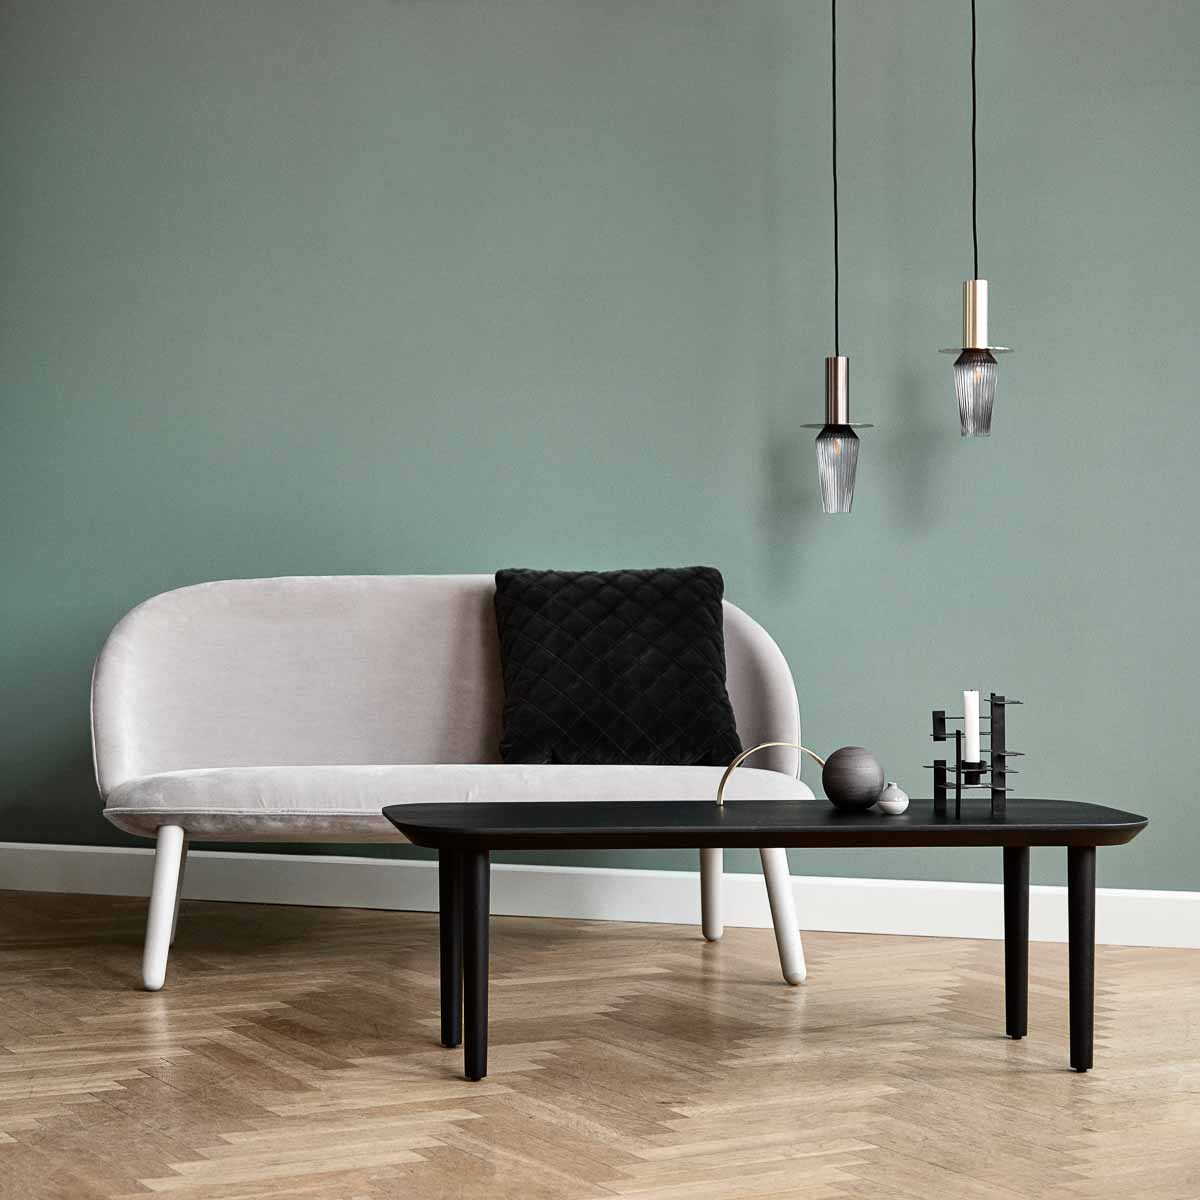 Coffee Table von Lindebjerg Design-2